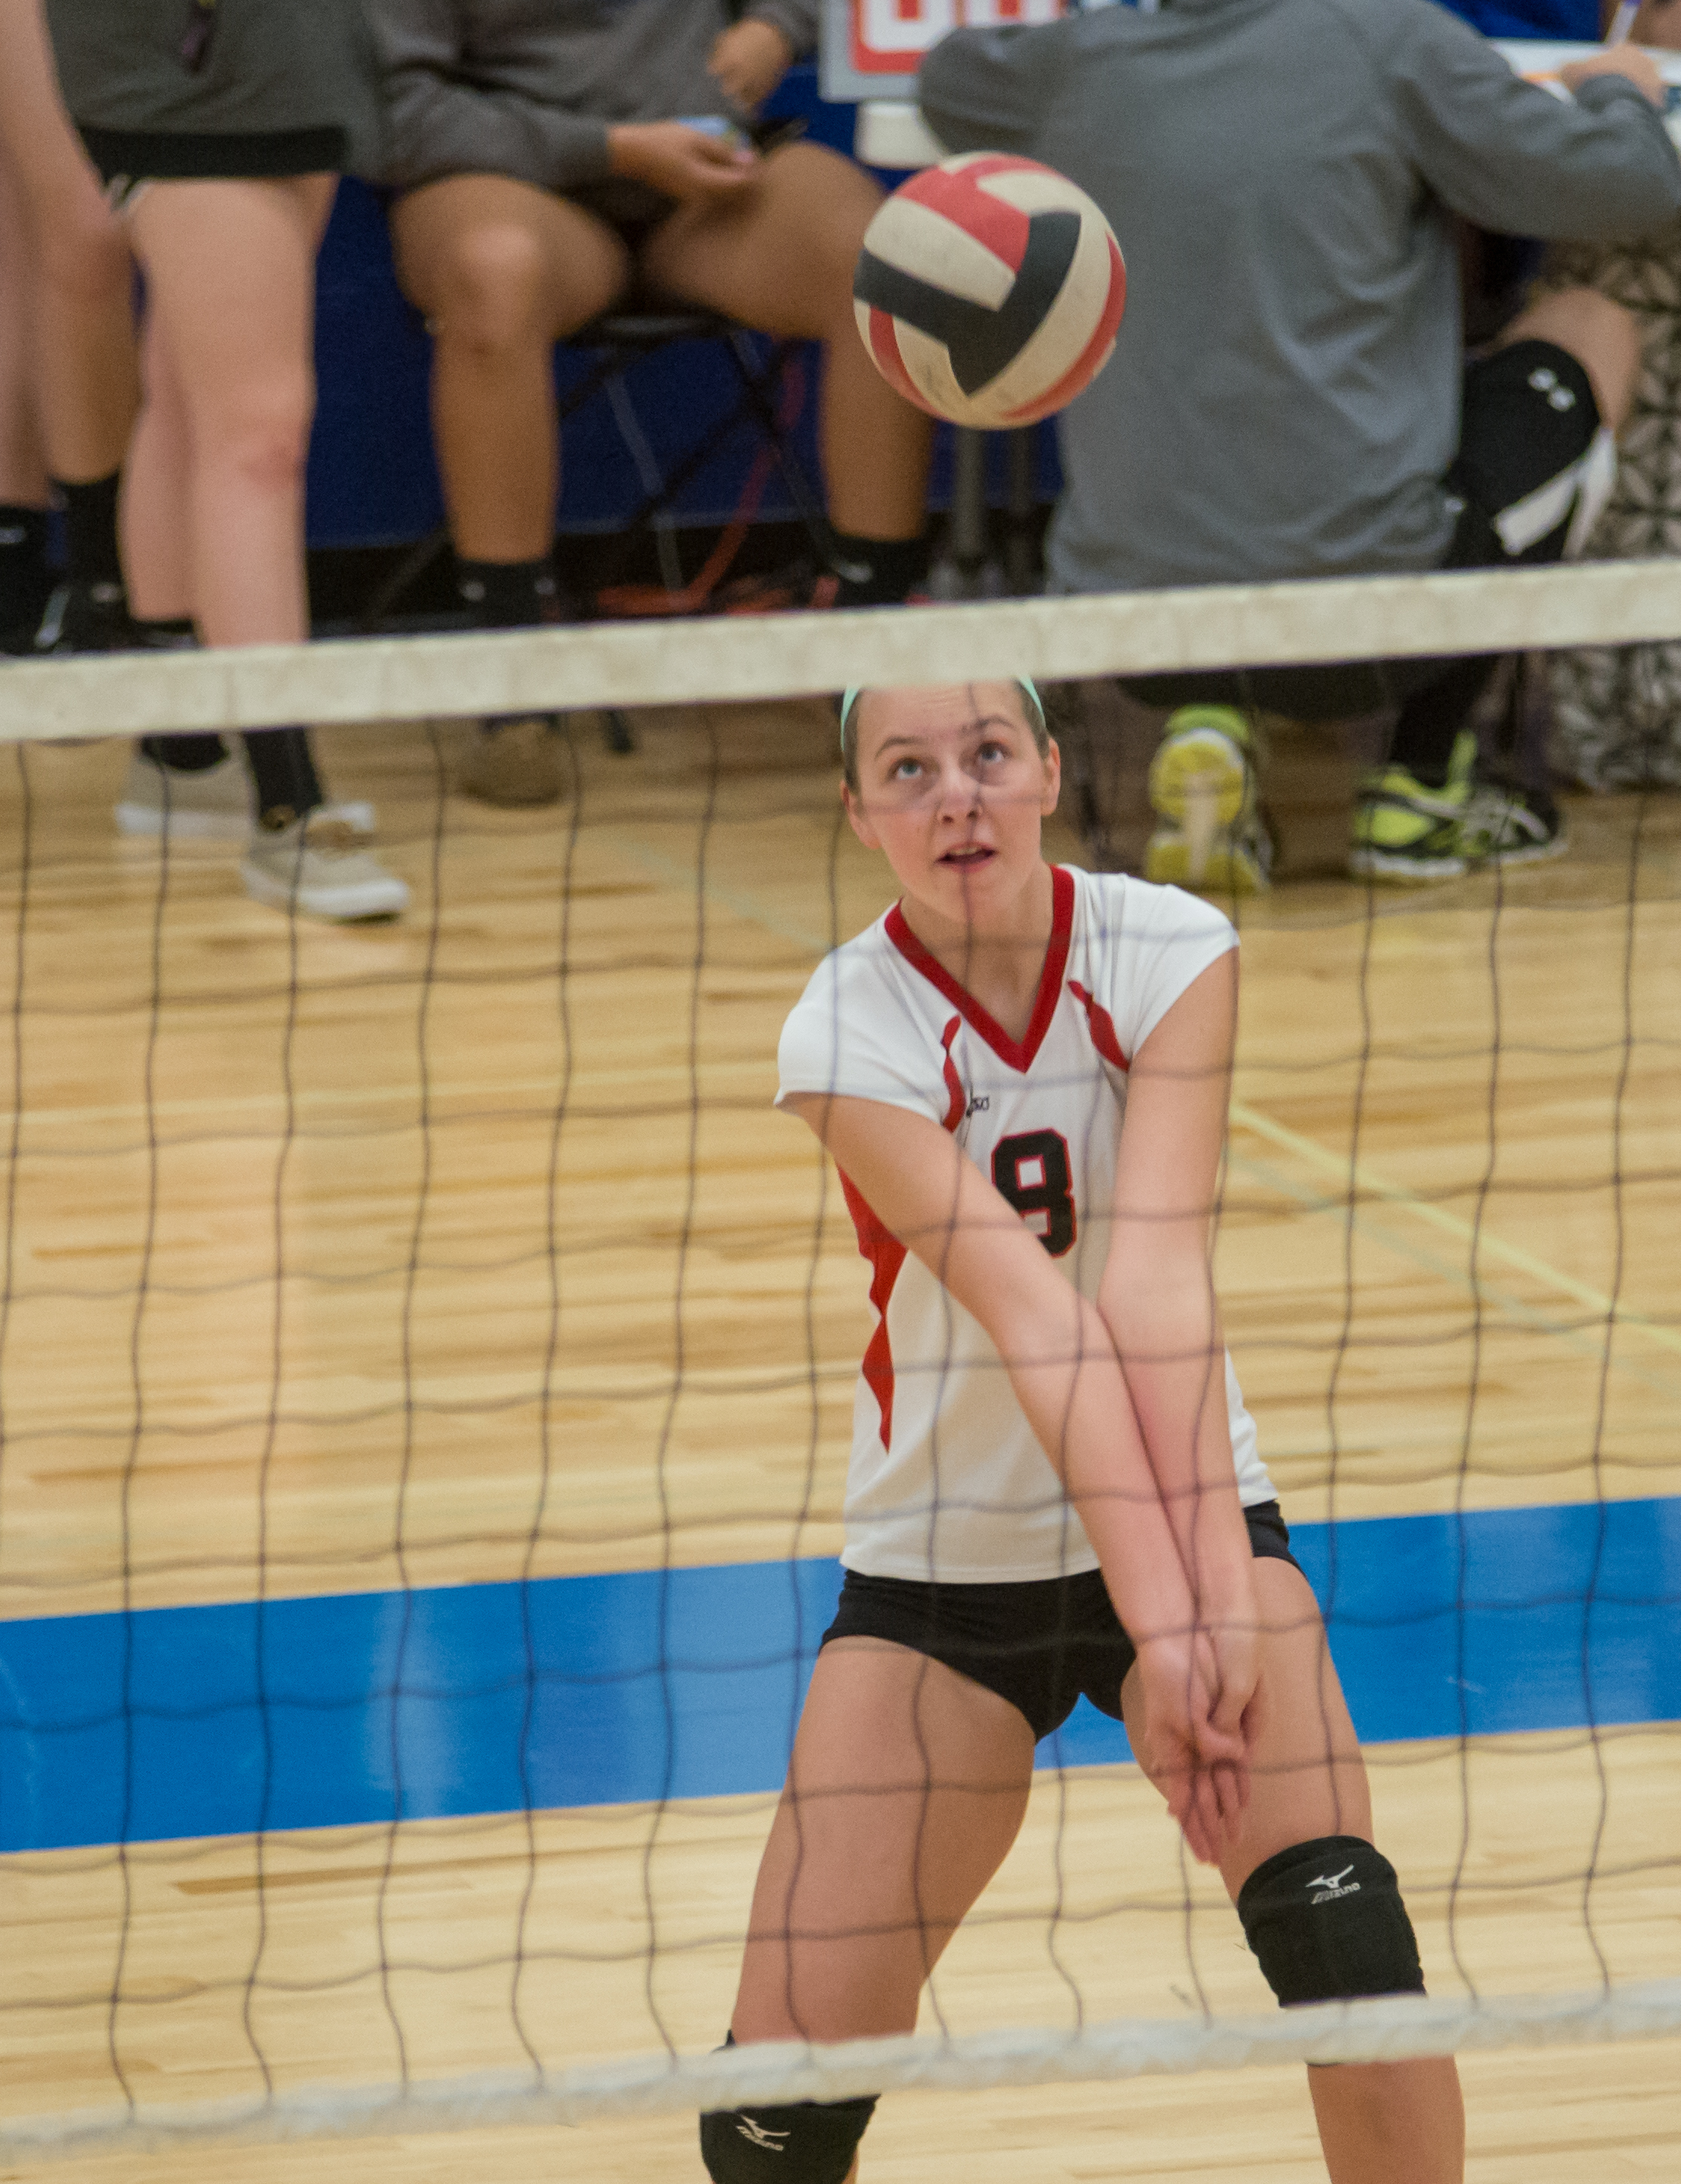 20160917-LHS Volleyball - Poudre Challenge-PMG_3163.jpg